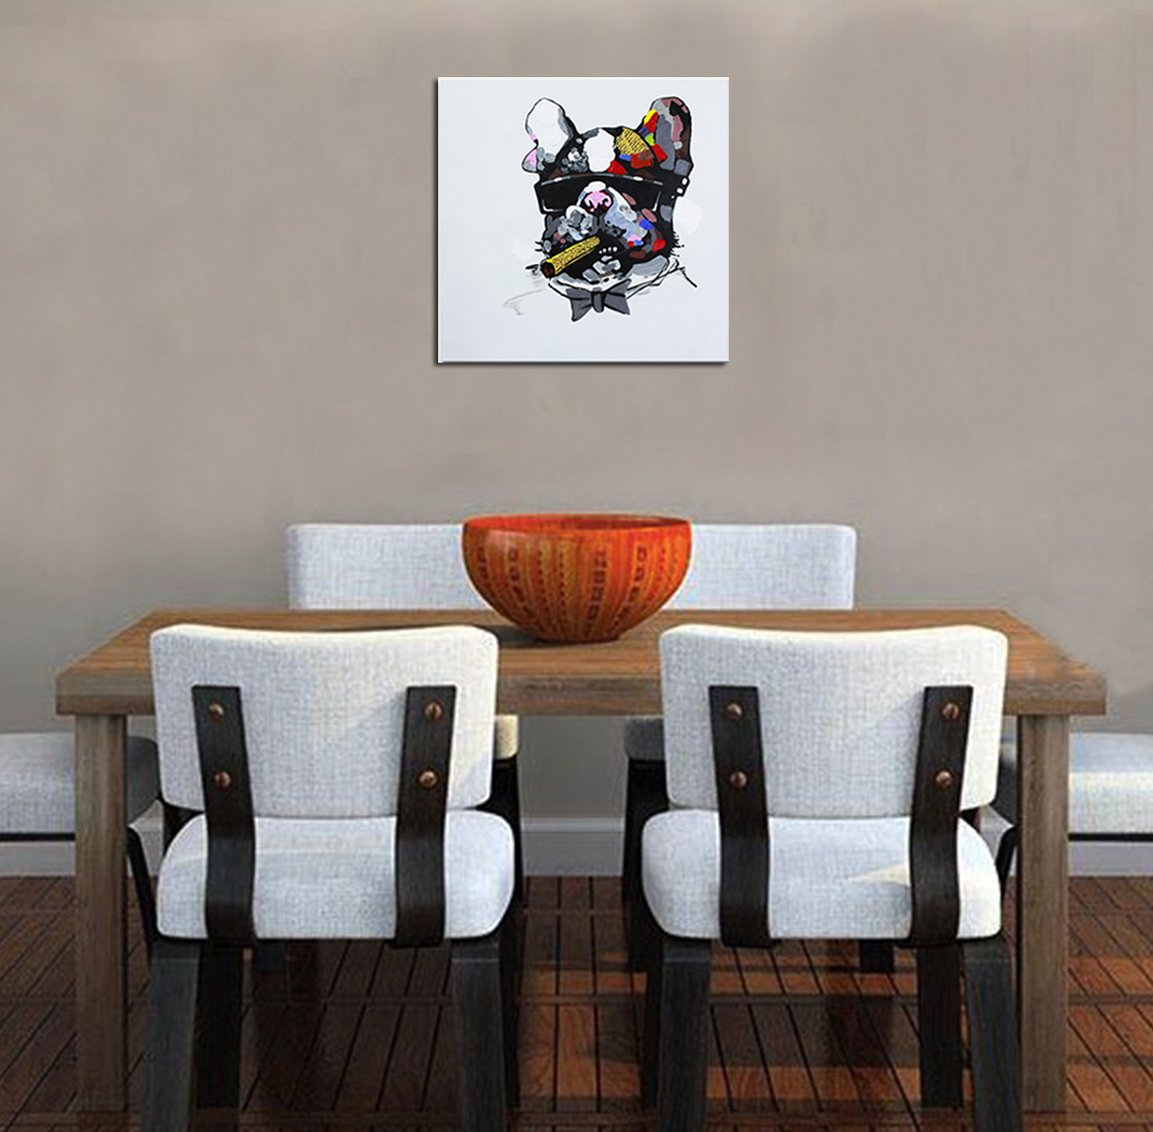 Fokenzary Hand Painted Painting Bulldog Wearing Sunglasses on Canvas Pop Wall Art Decor Framed Ready to Hang for Living Room Bedroom